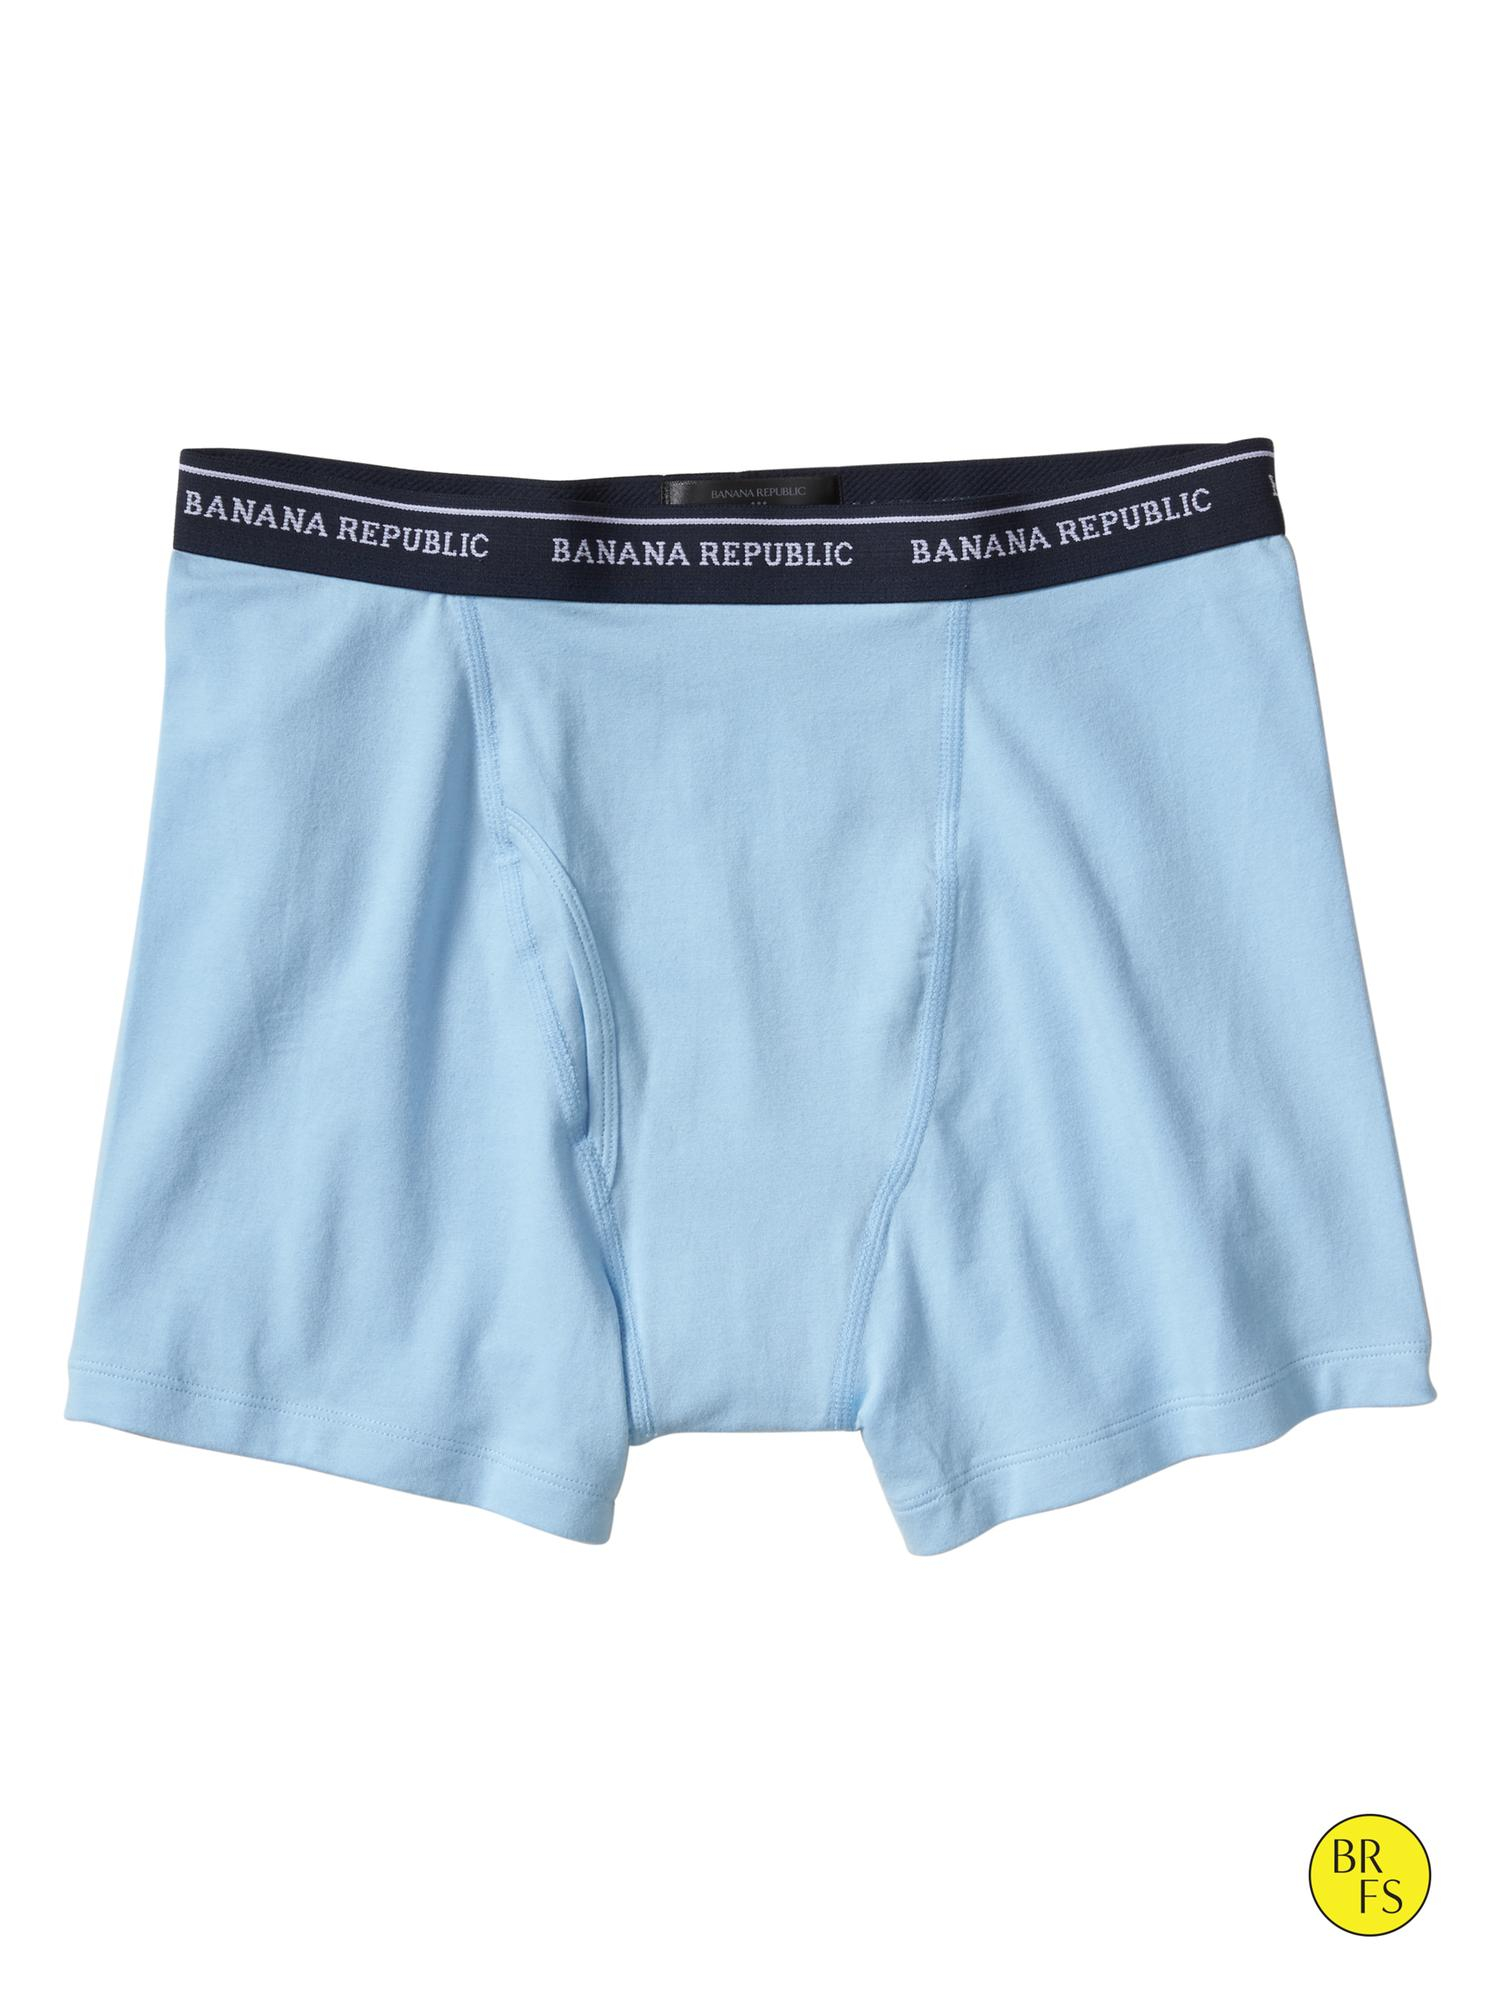 Find Banana Republic men's boxers at ShopStyle. Shop the latest collection of Banana Republic men's boxers from the most popular stores - all in one.